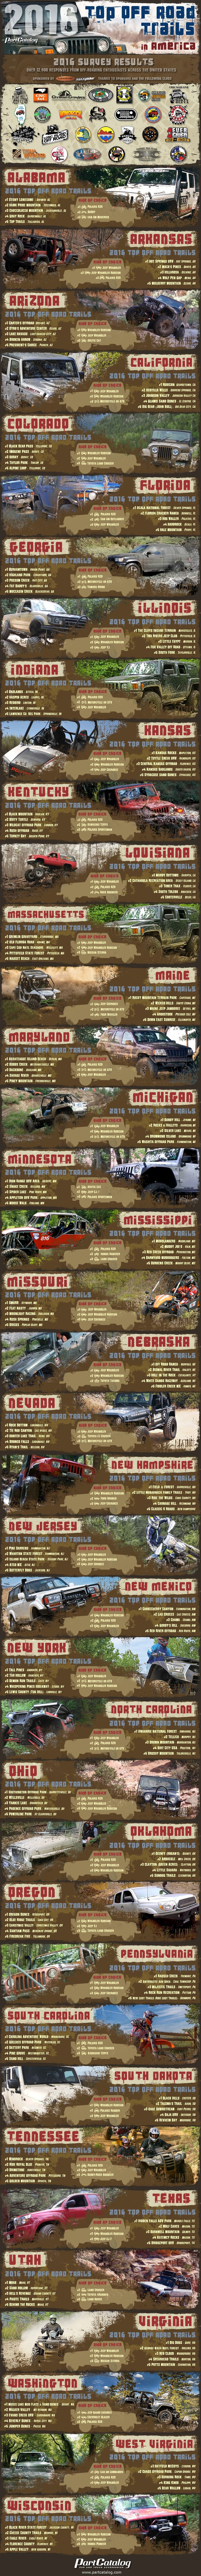 Top Off-Road Trails & Parks in America (Infographic)